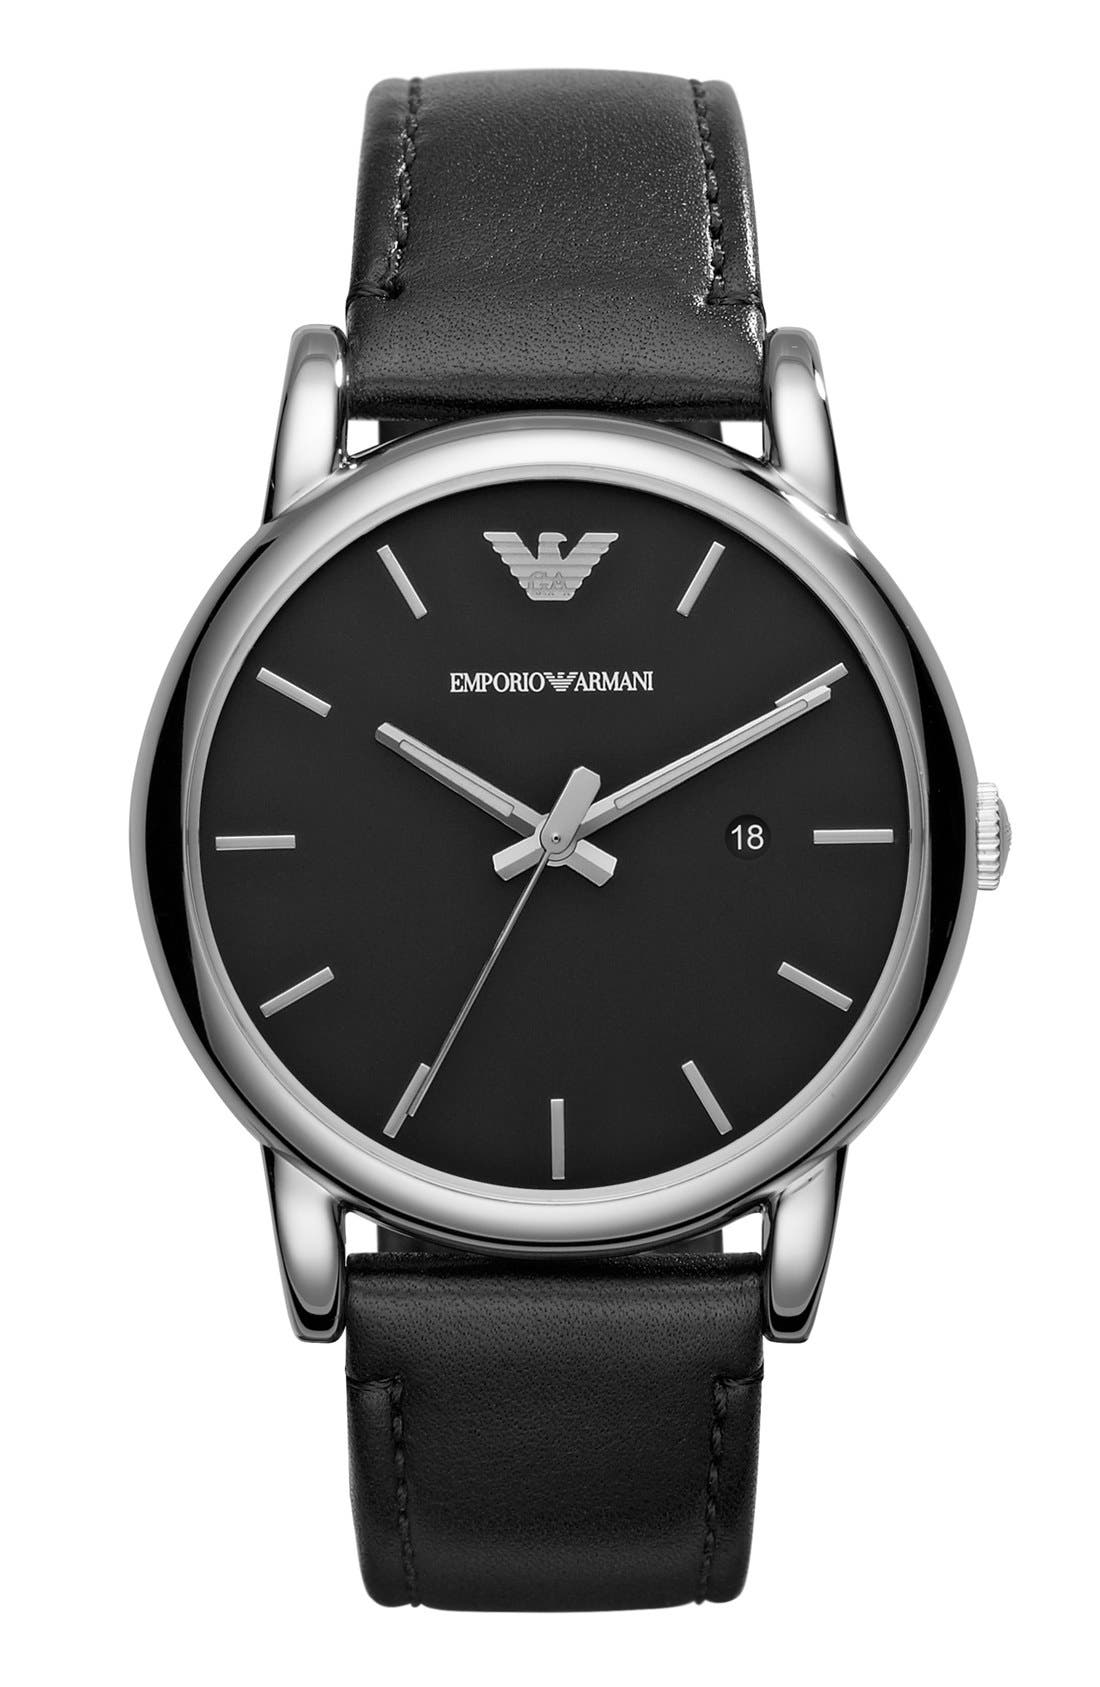 Main Image - Emporio Armani Leather Strap Watch, 41mm